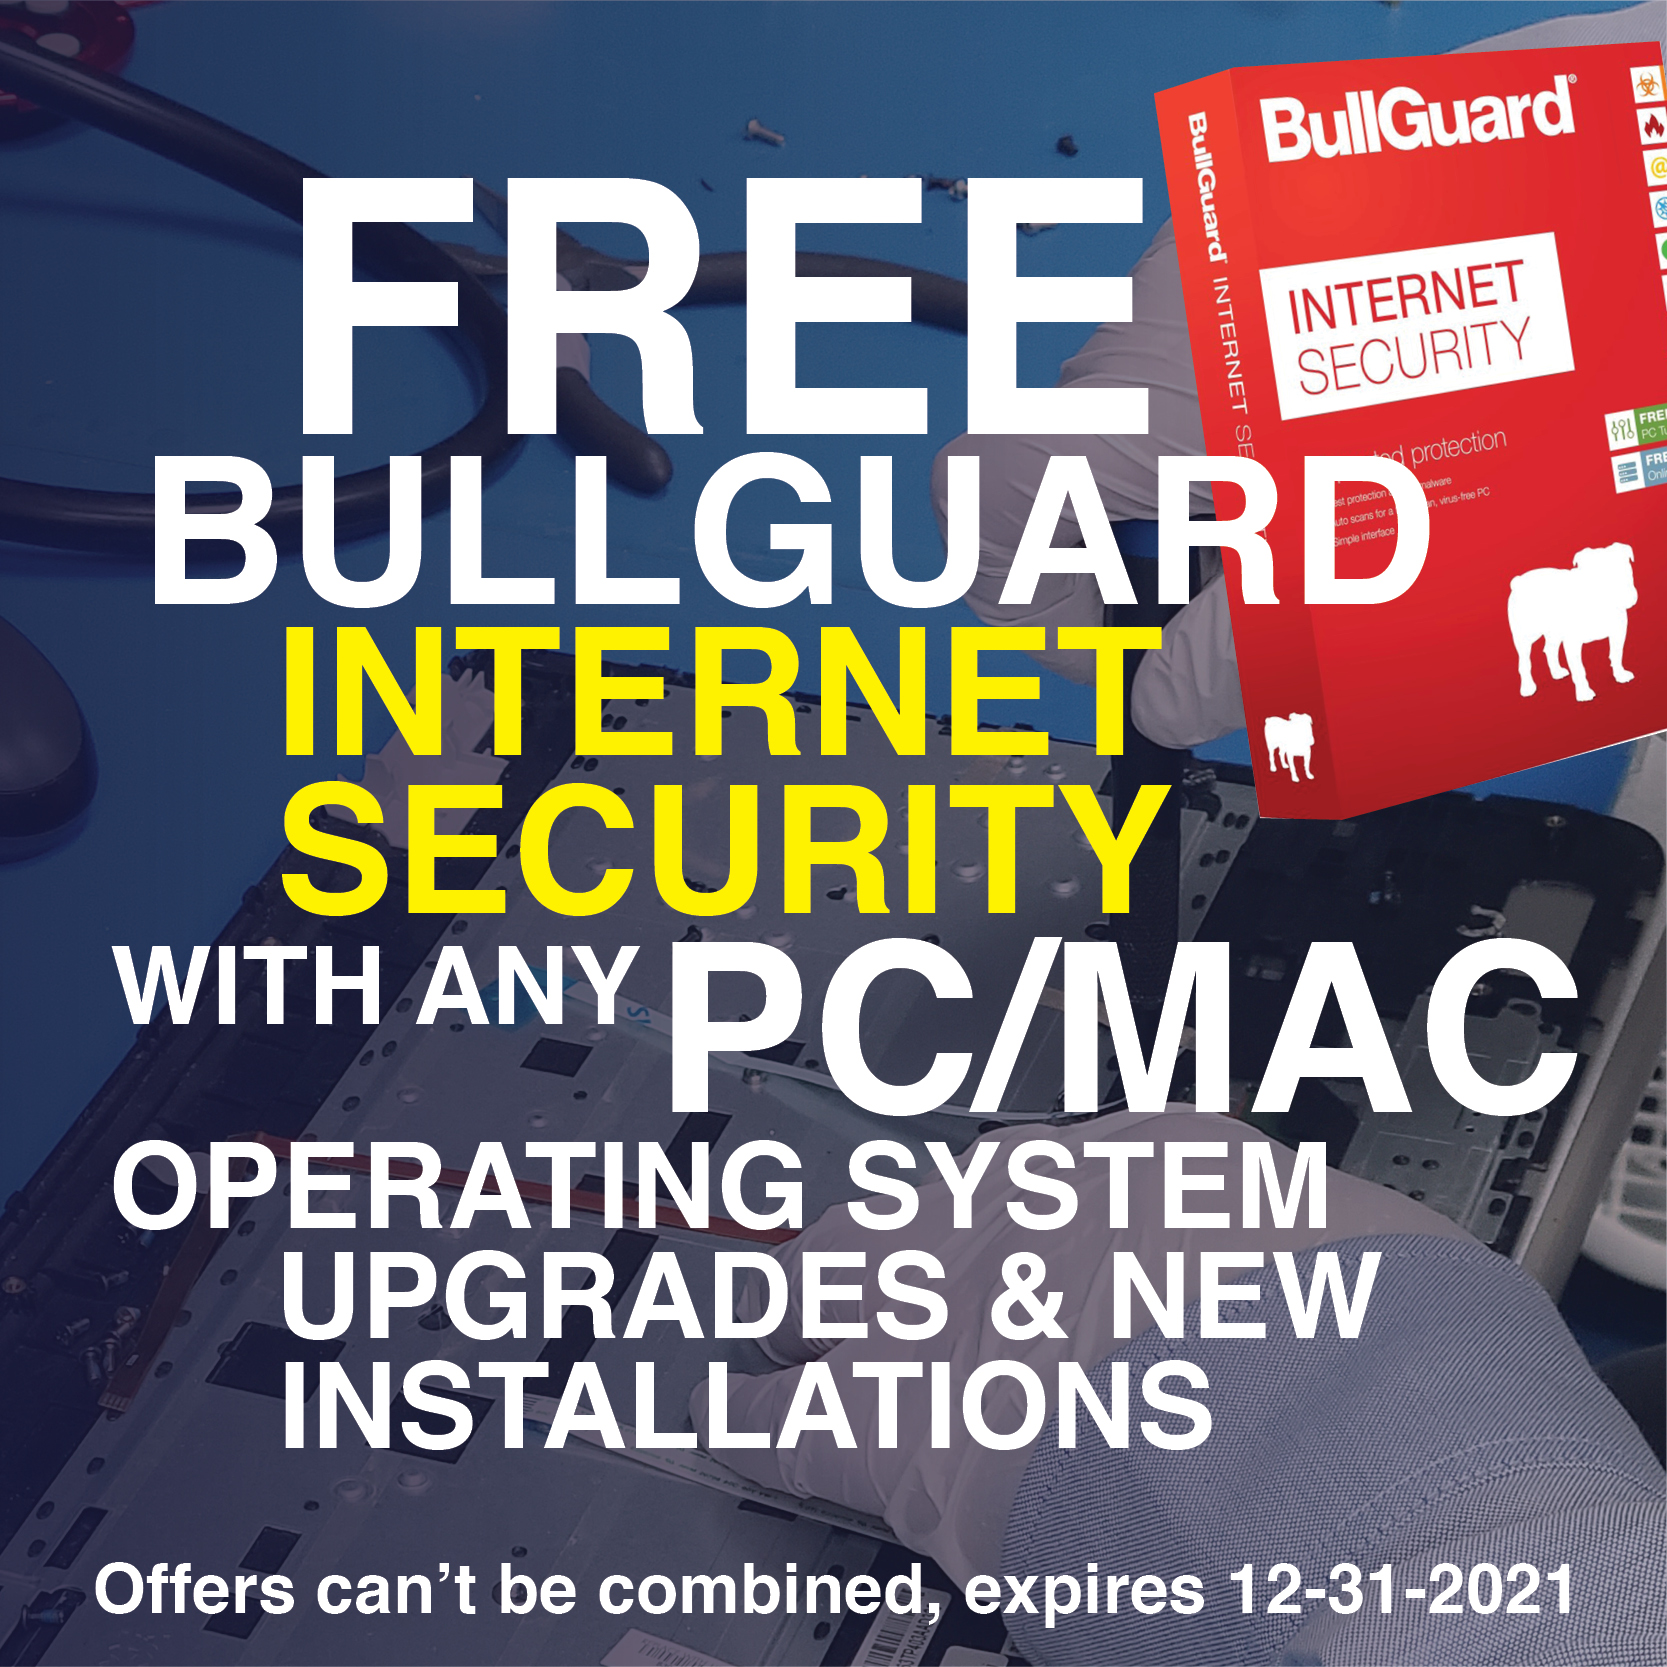 Get Your Free Bullguard Internet Security with and Mac & Pc Operating Systems upgrade & new installations